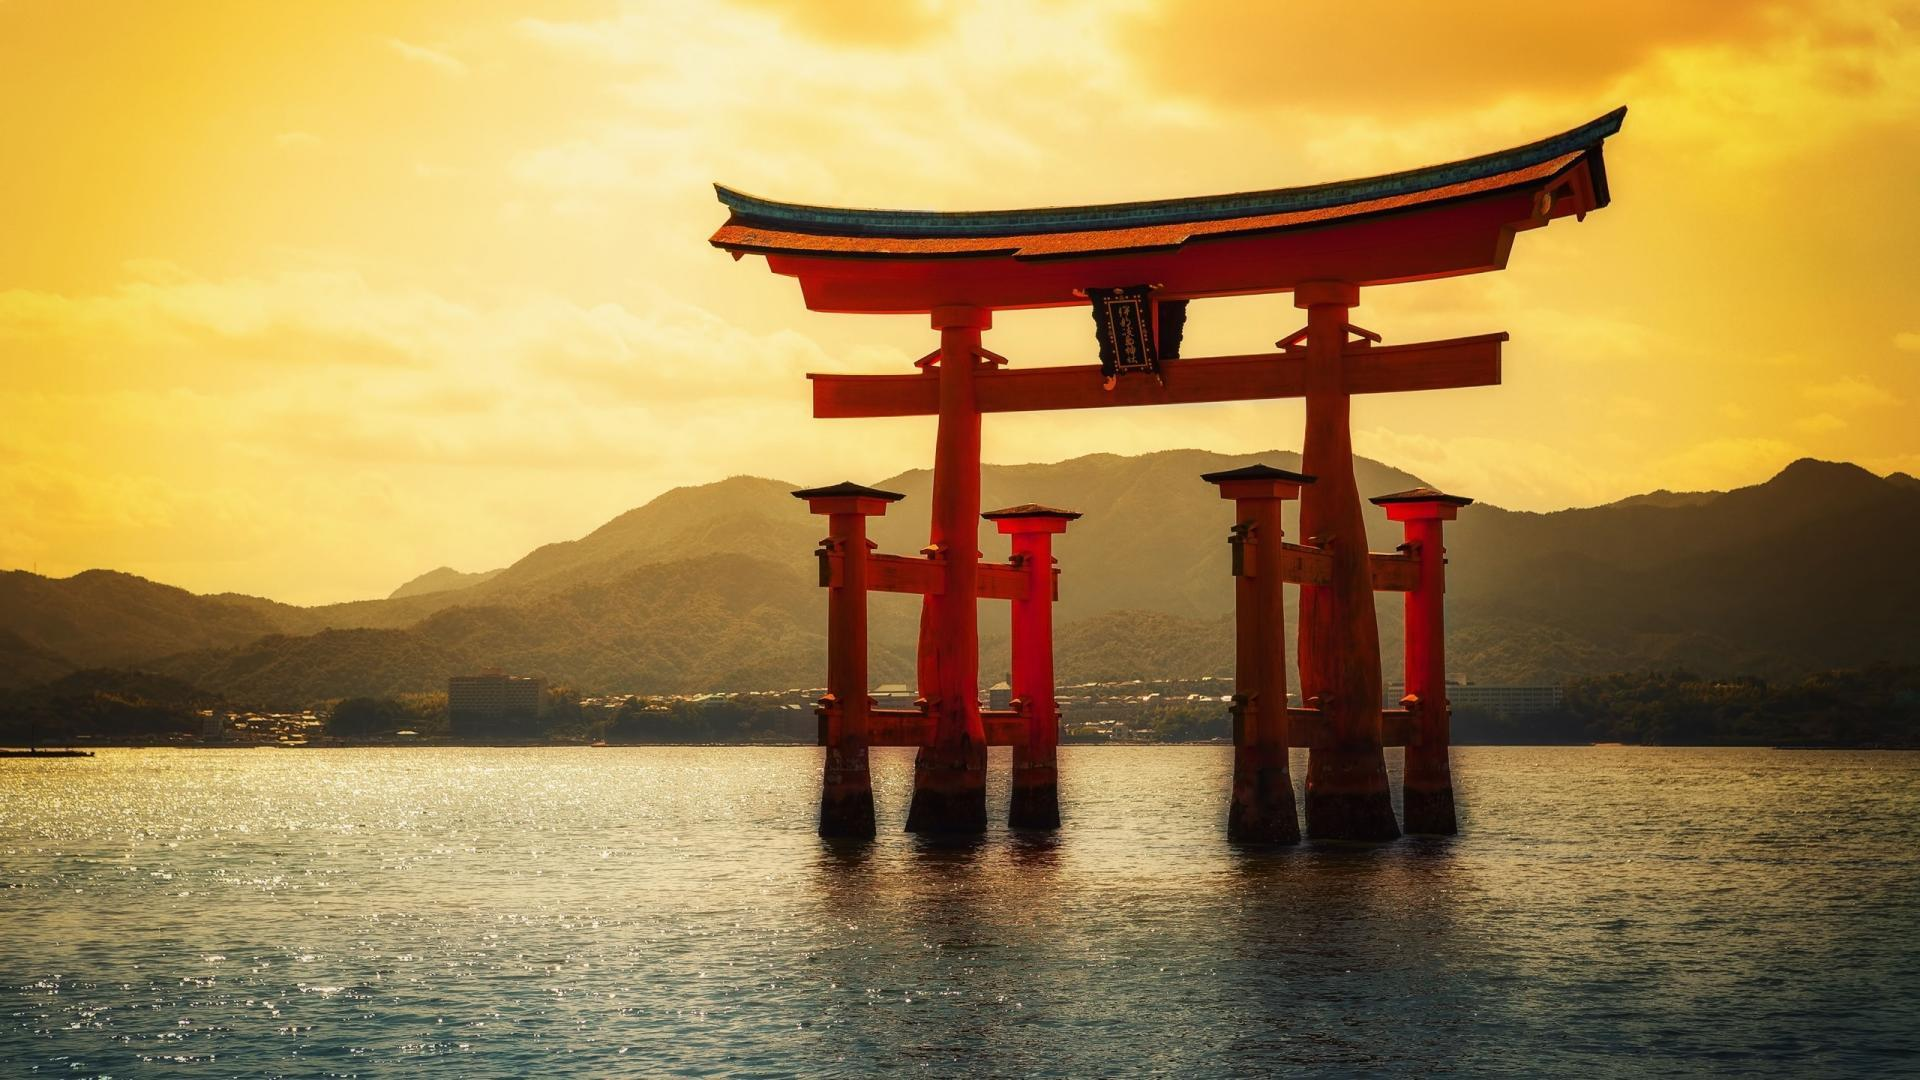 Gate sunlight torii seascapes japanese itsukushima shrine